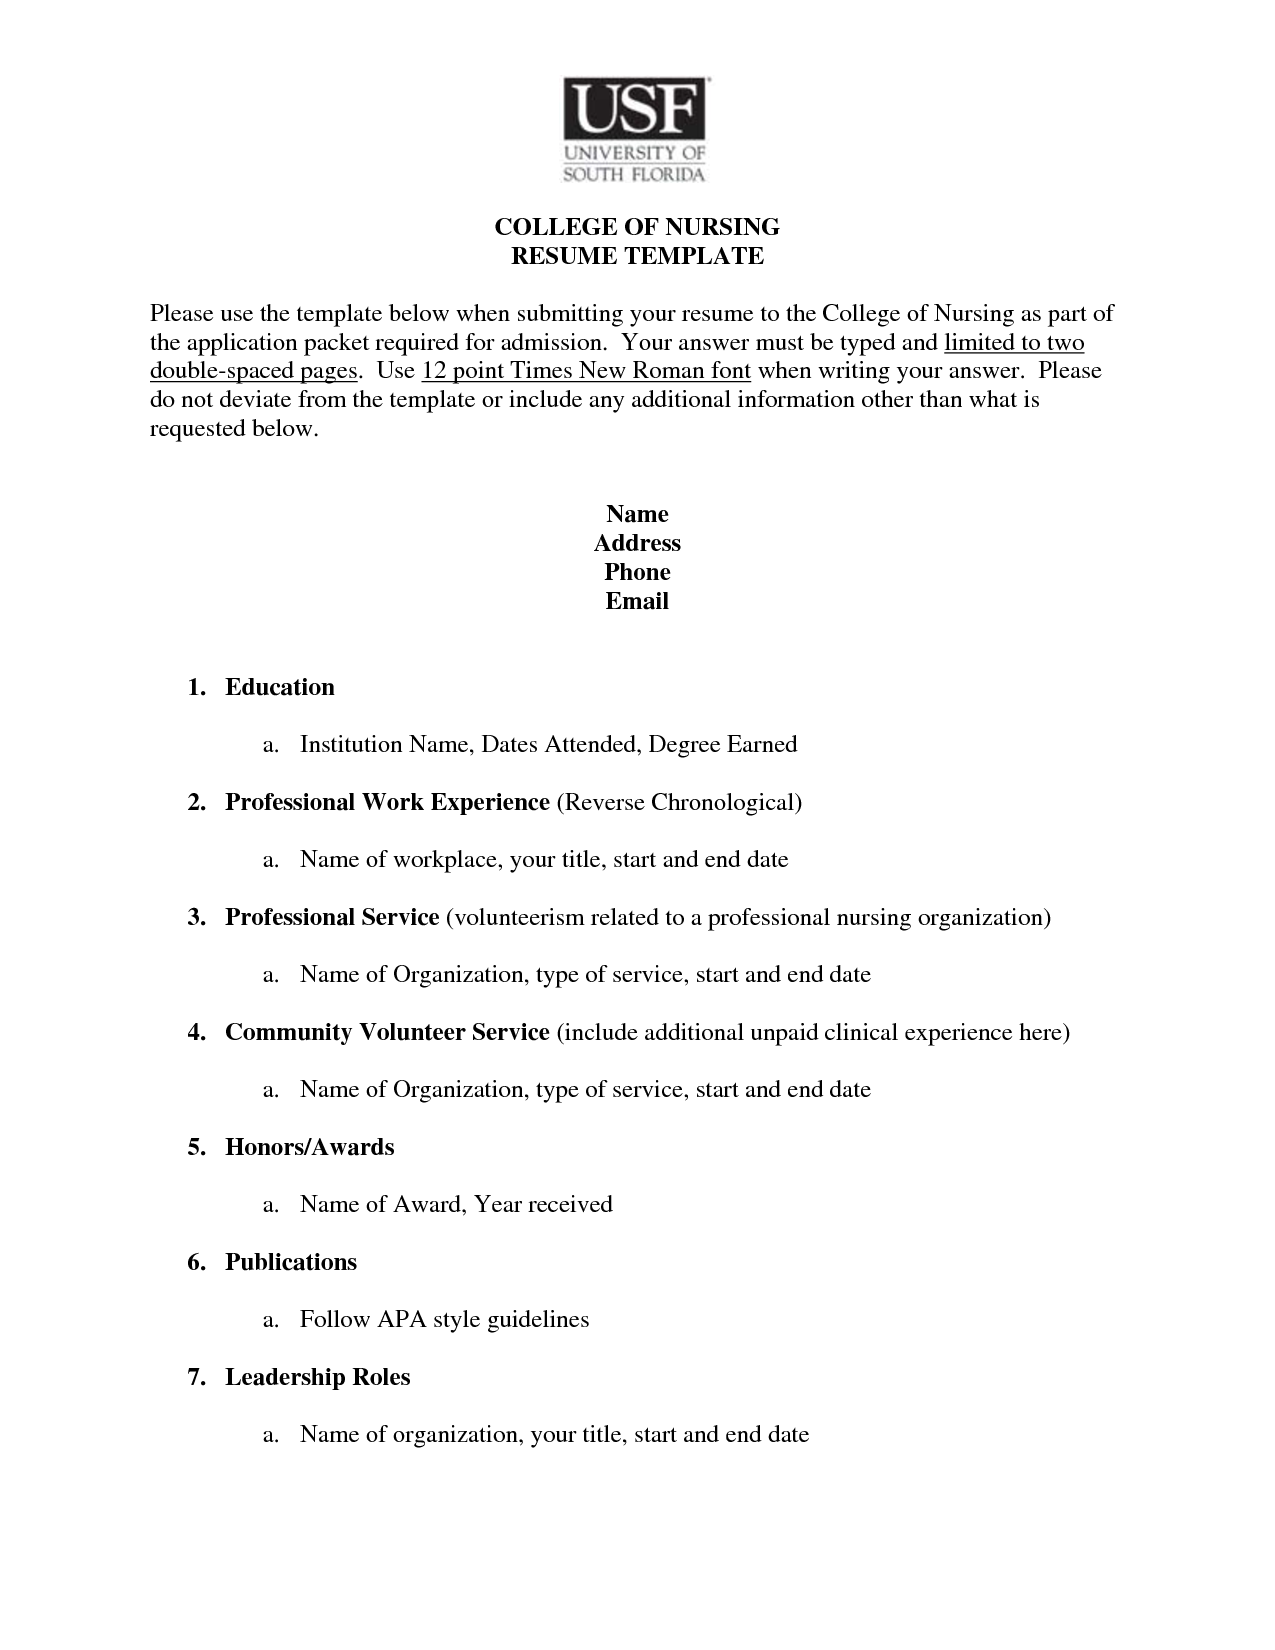 Sample Resume College Application Pin By Resumejob On Resume Job Pinterest Resume